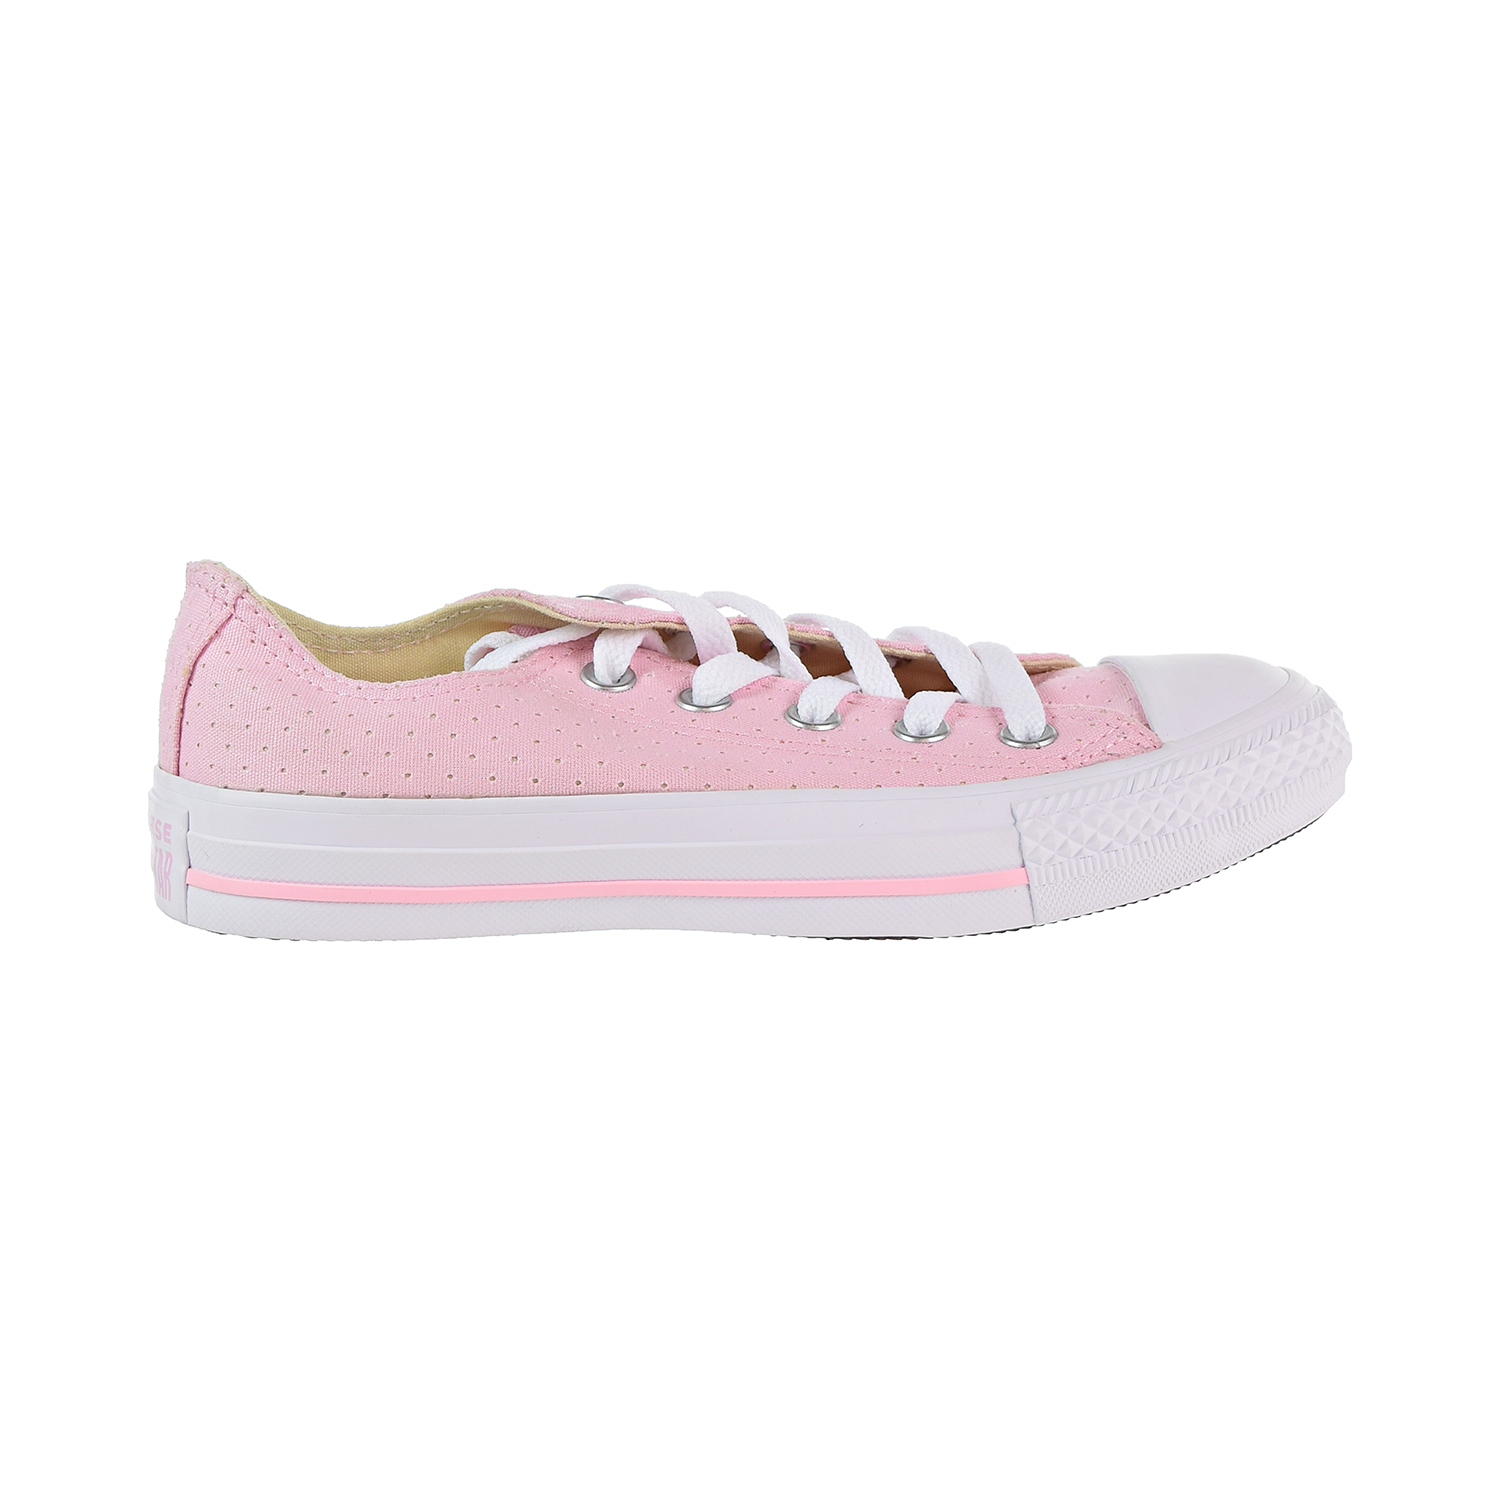 33fdbb48d9d2c5 Converse Chuck Taylor All Star Ox Perforated Women s Shoes Cherry  Blossom White 560680c